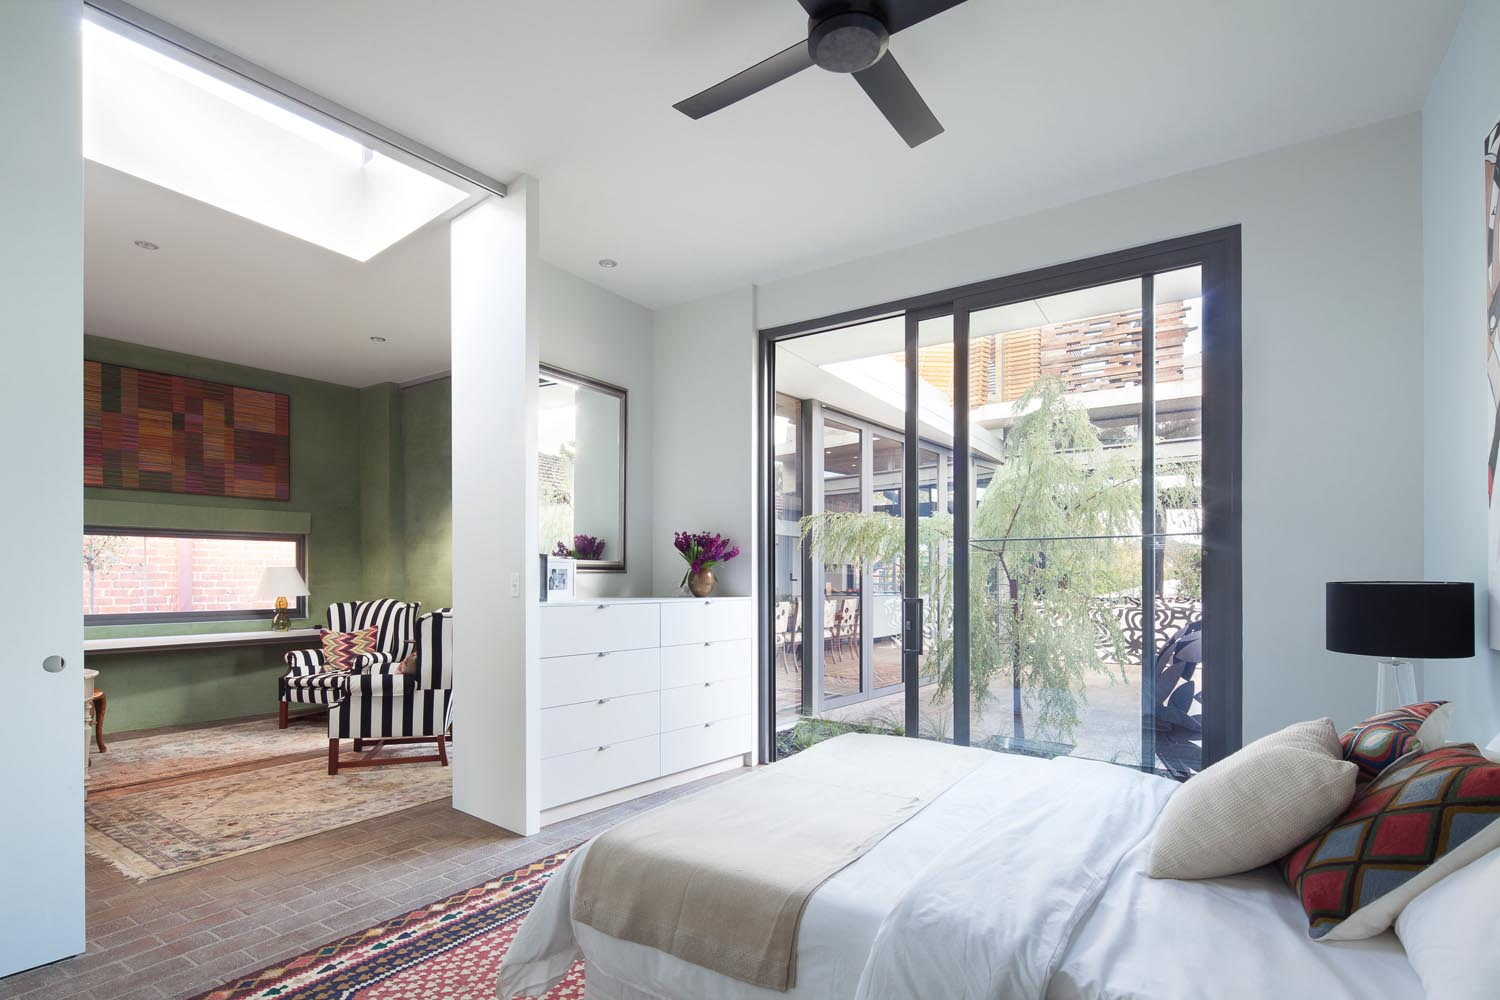 The bedrooms, as well as the rest of the house, centre on a courtyard with moveable glass walls